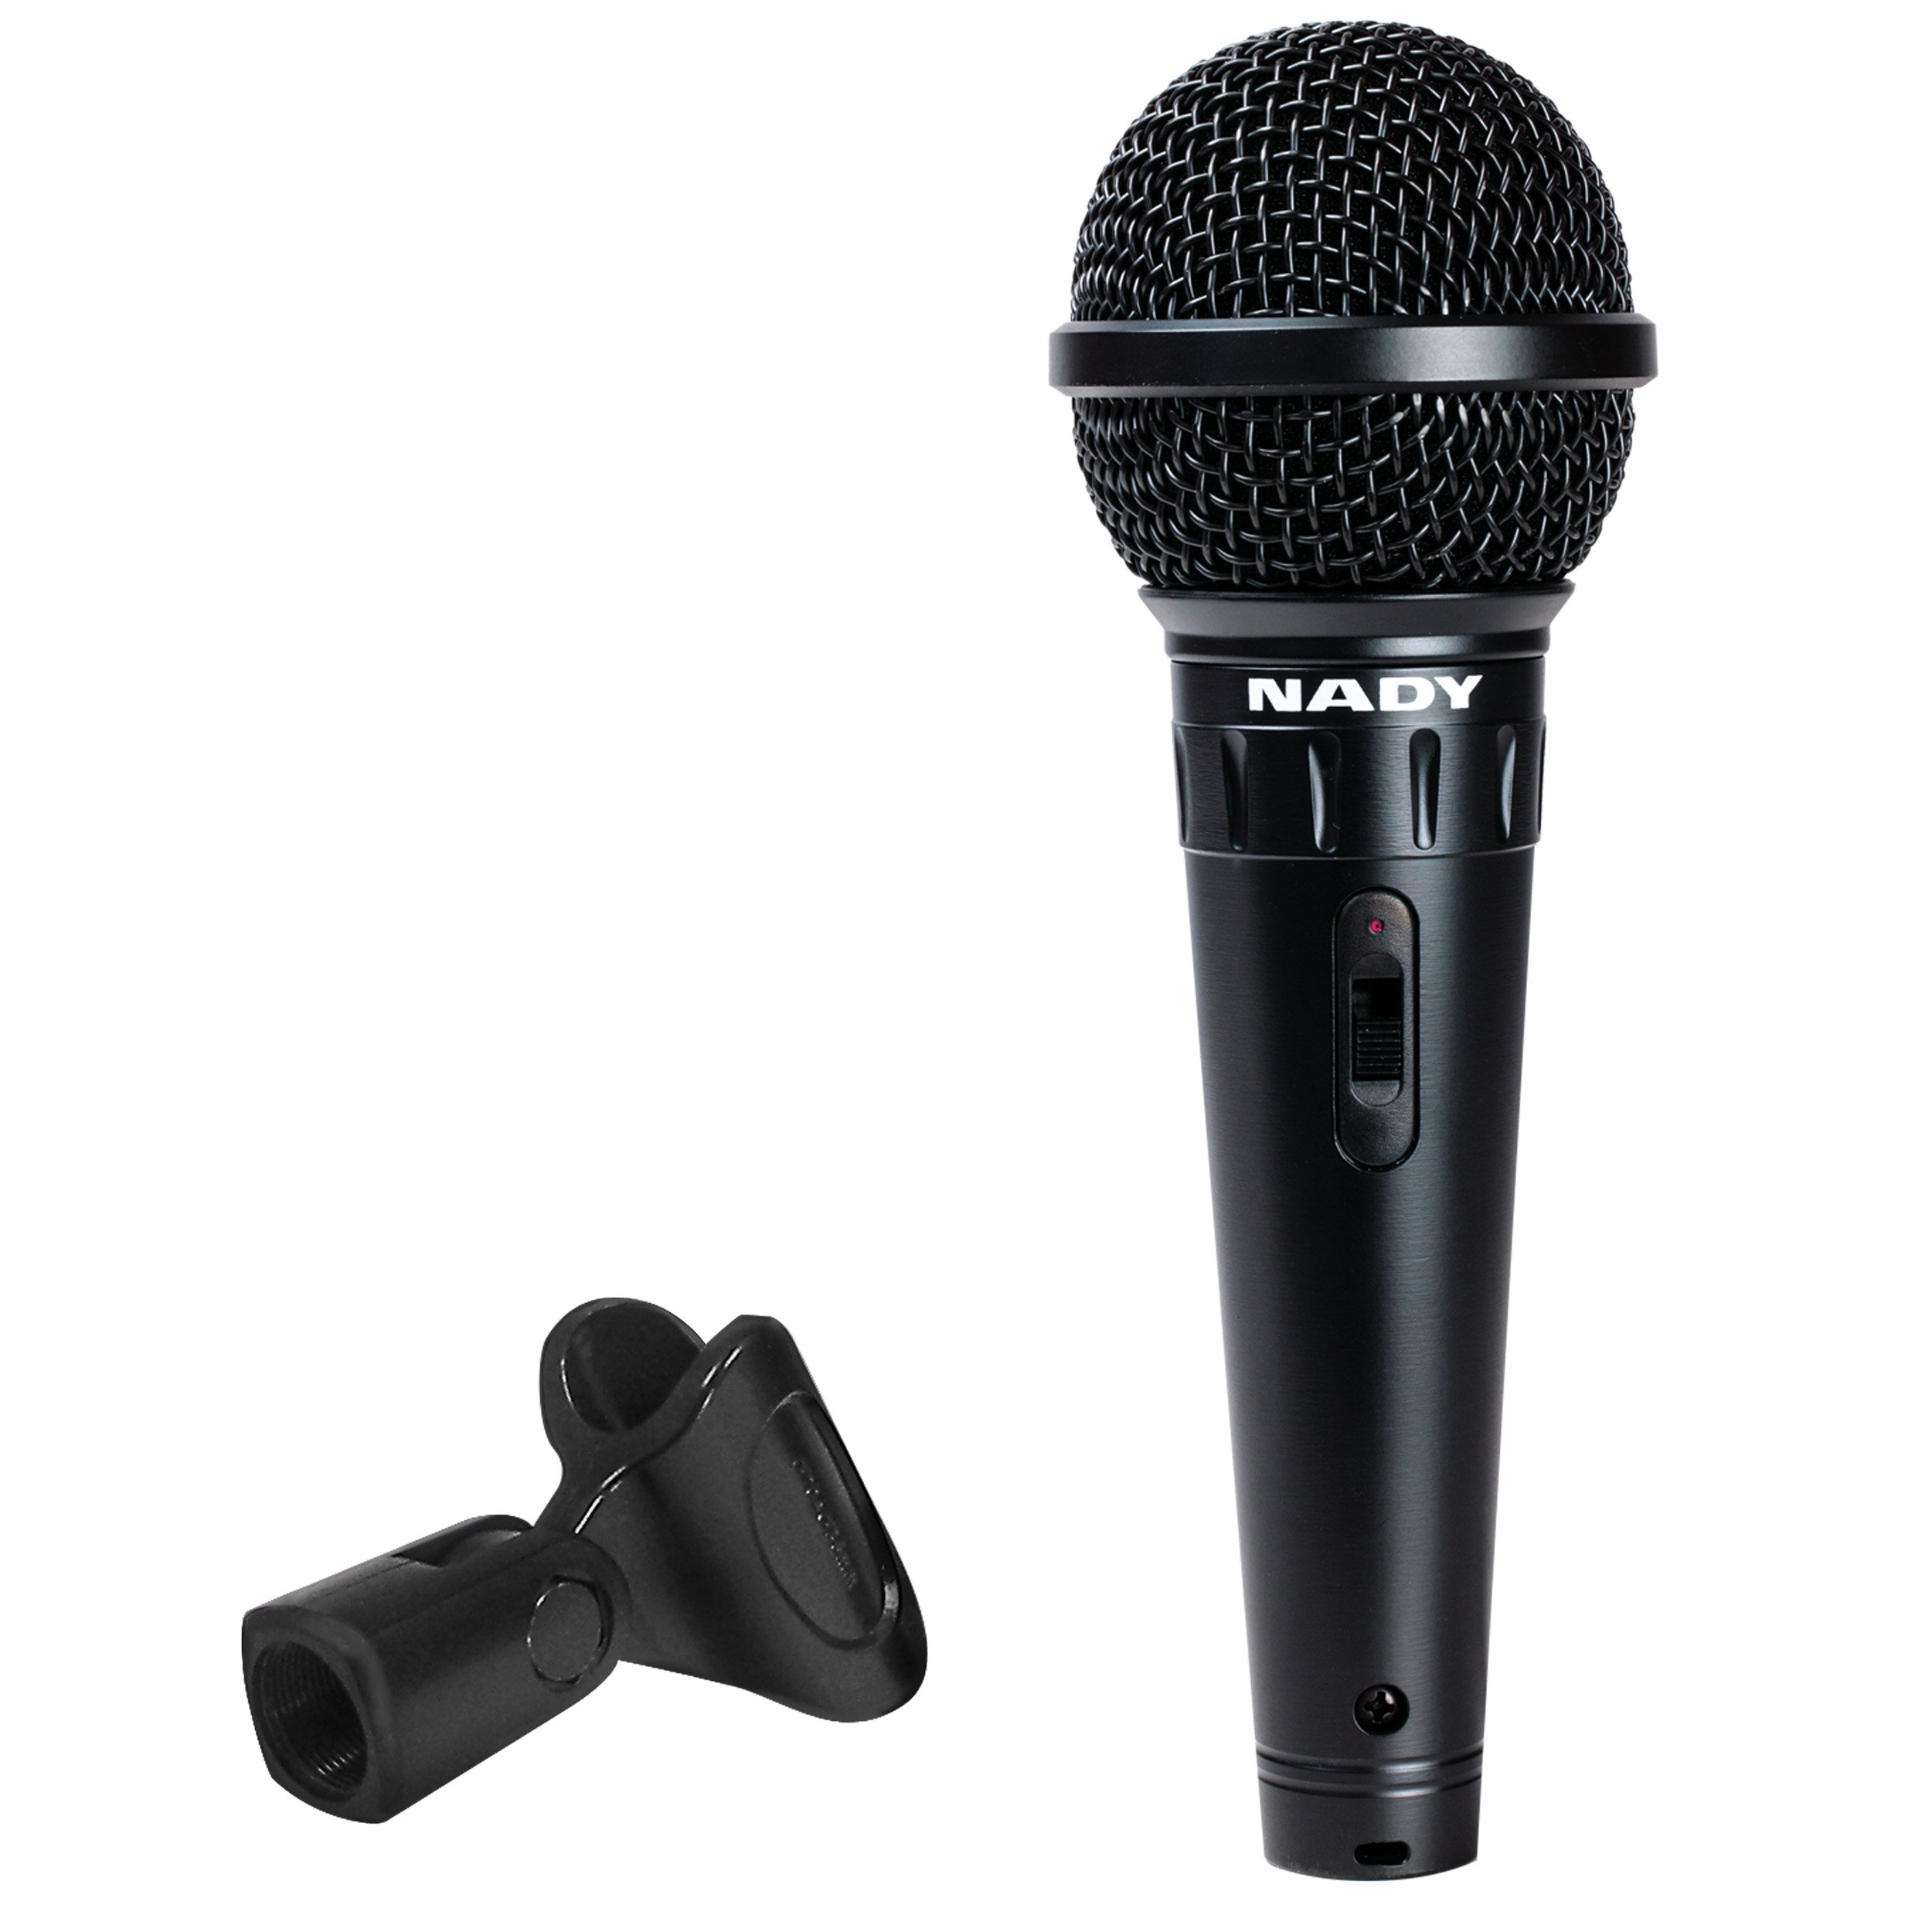 Nady Vocal Dynamic Microphone (SP-1) by Nady